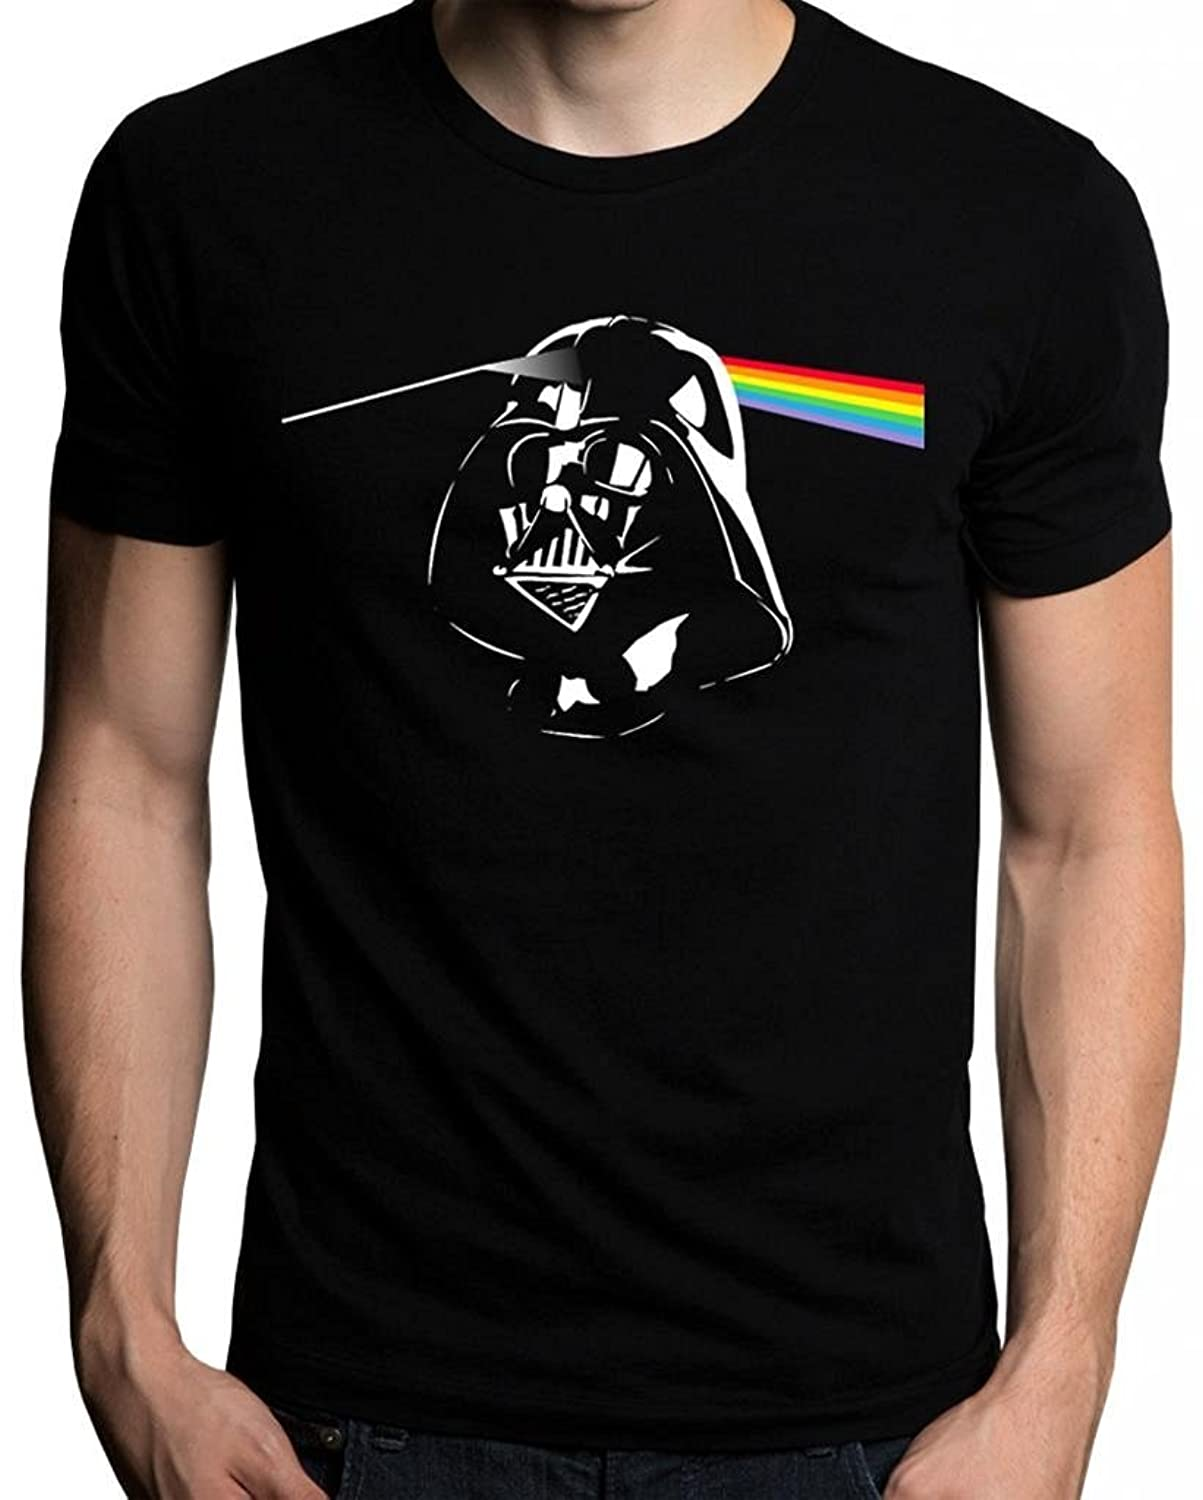 Amazon.com: The Nakin Funny Pink Floyd Darth Vader Dark Side Of The Moon Star Wars T-Shirt: Clothing